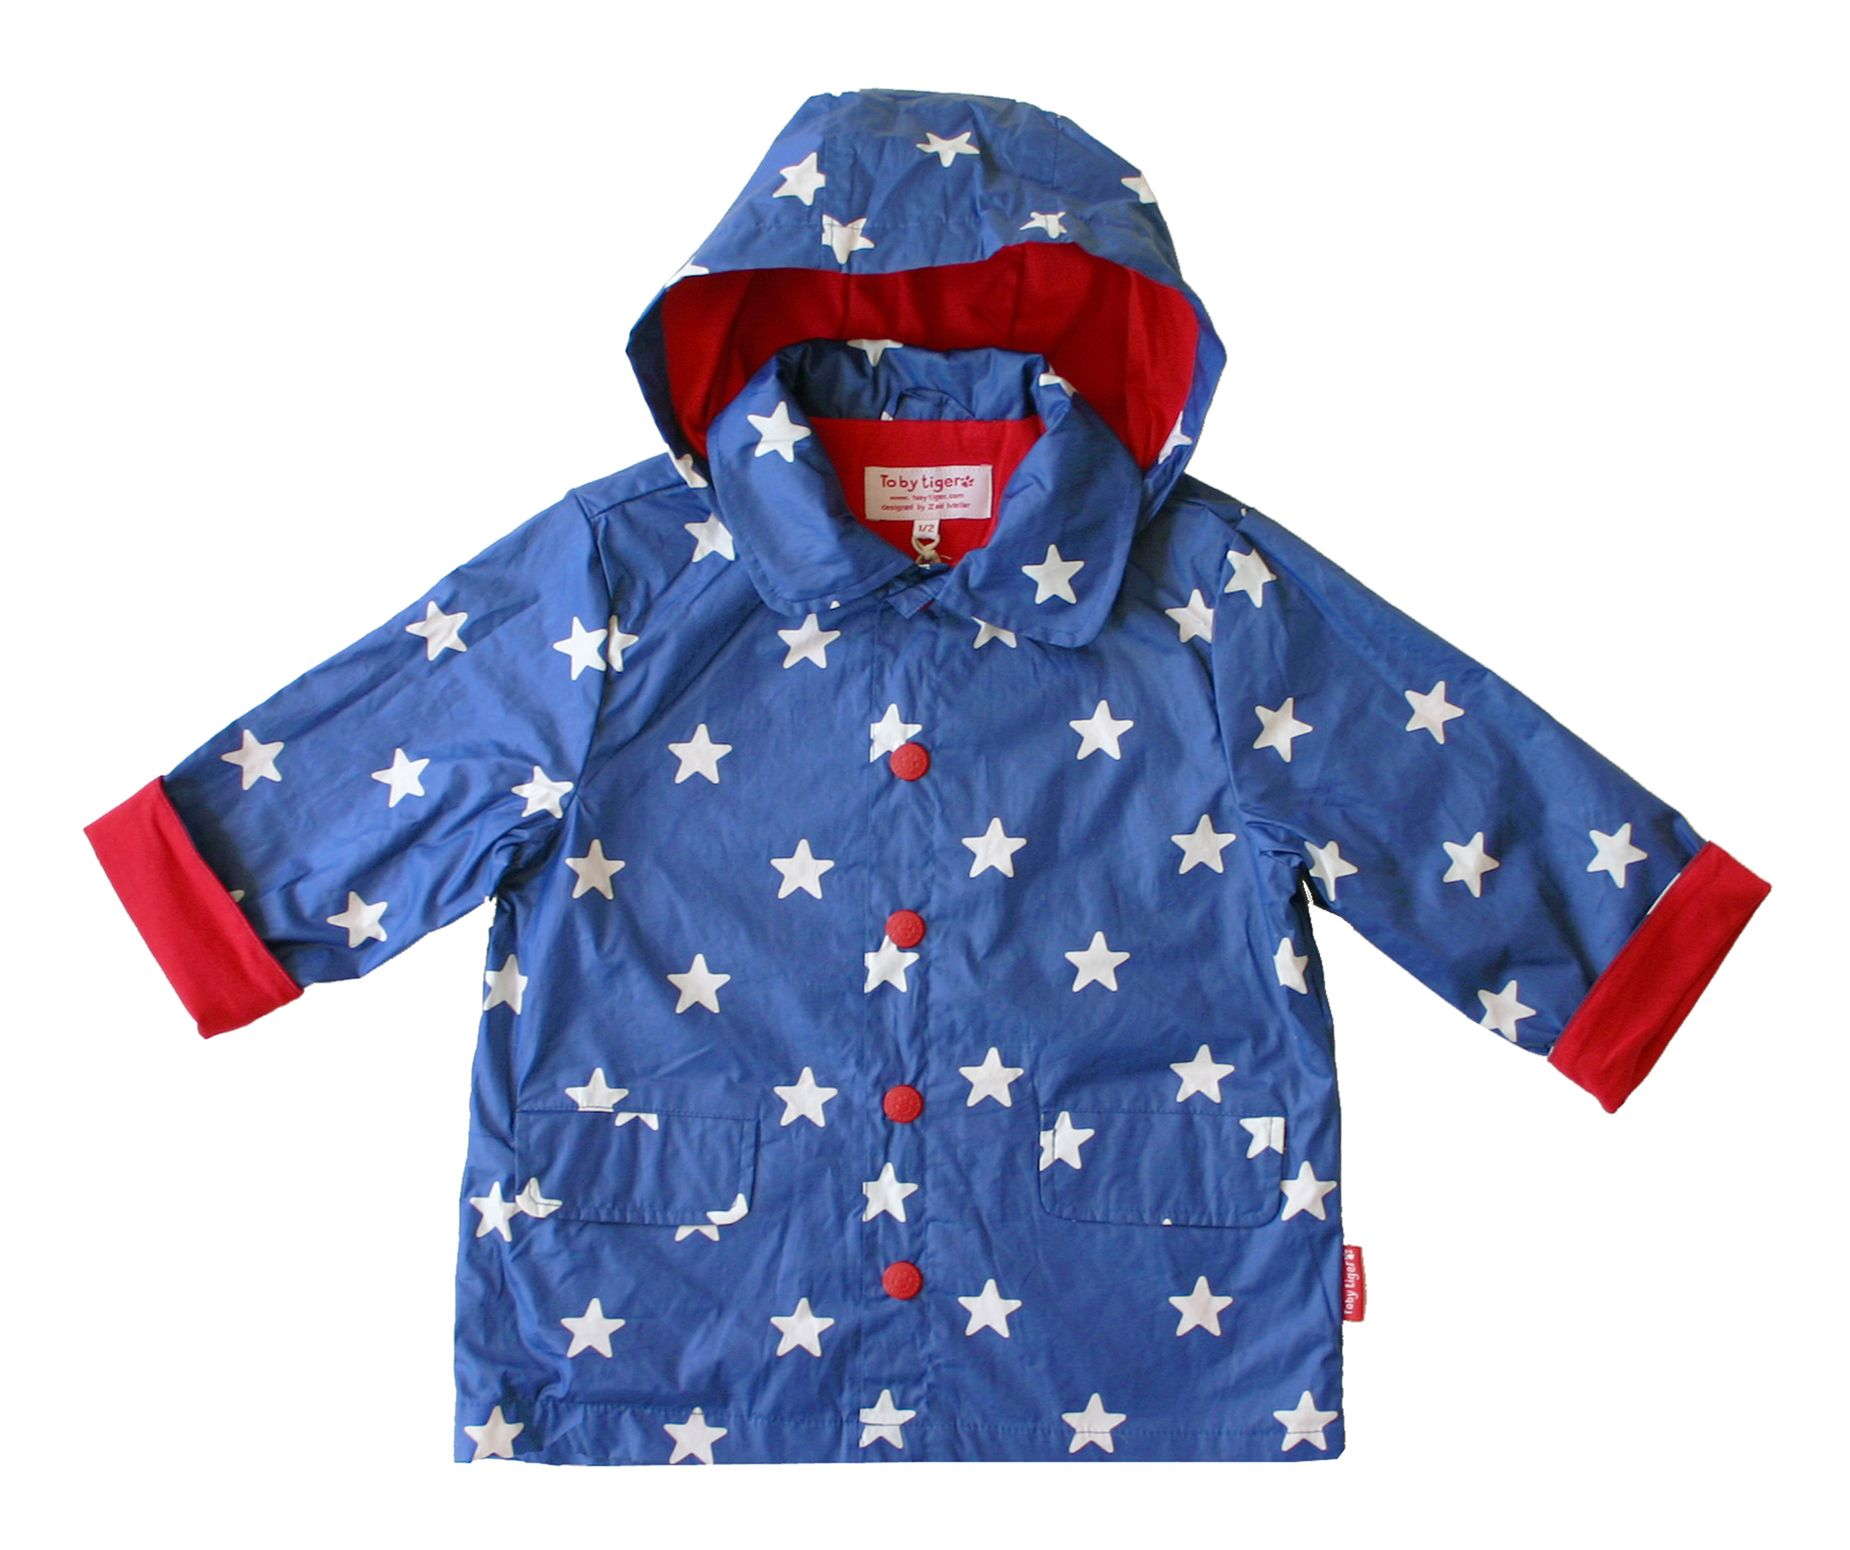 Toby Tiger Boys hooded raincoat, Blue